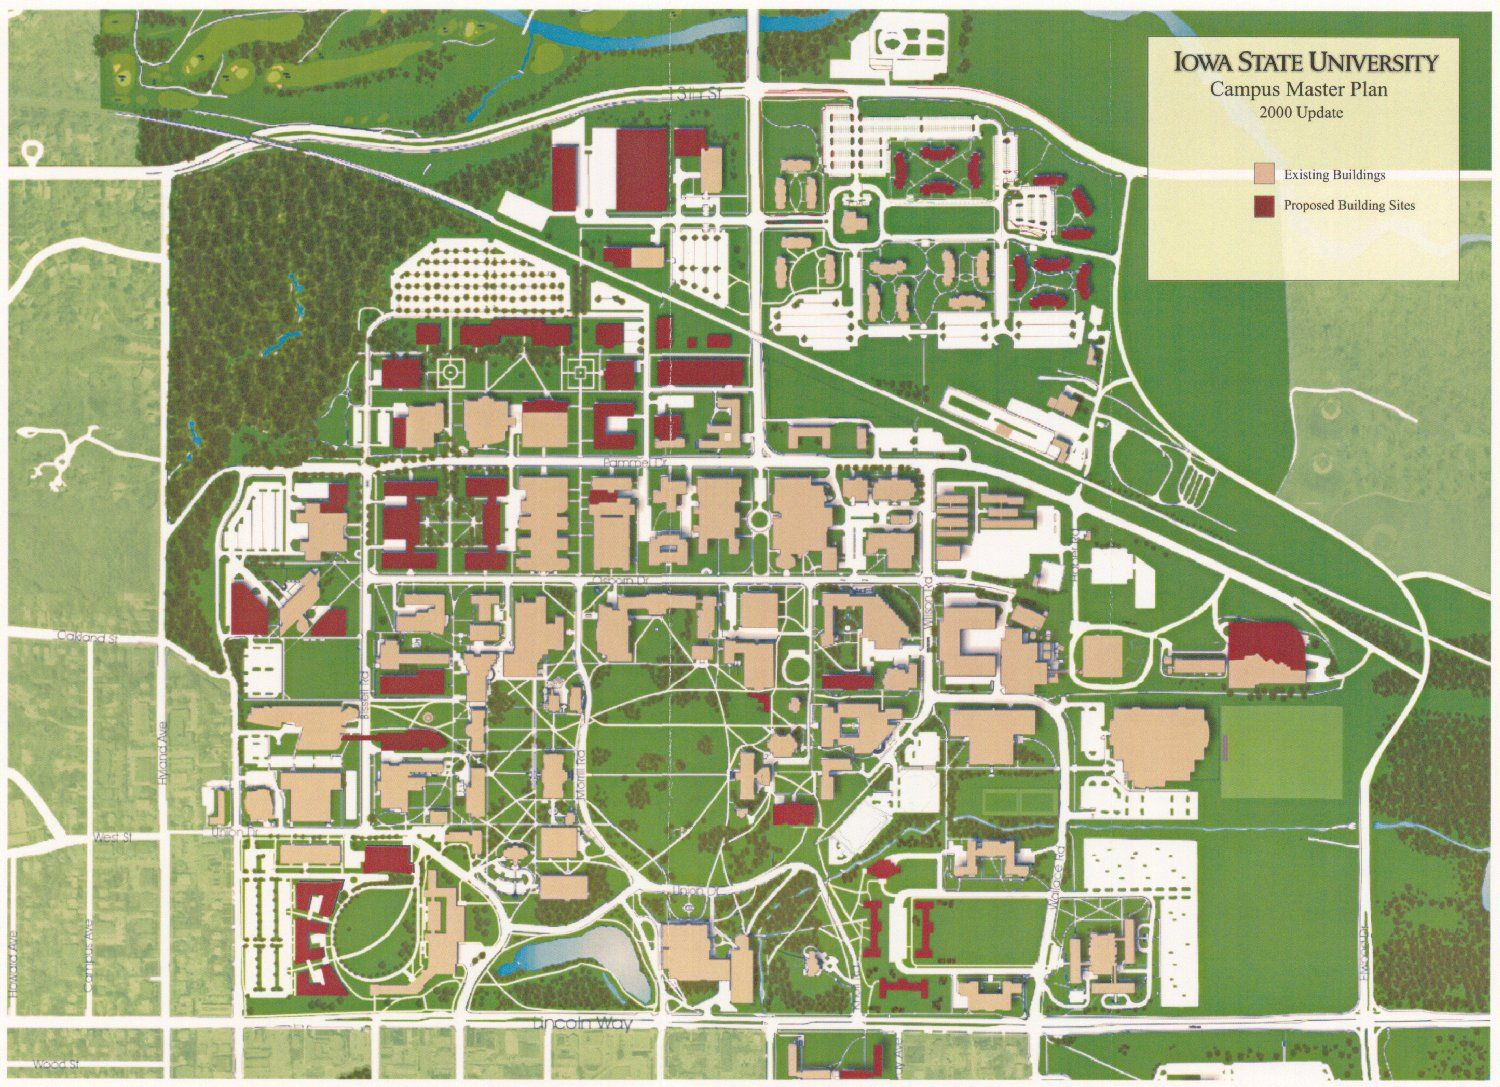 University Of Iowa Campus Map University of Northern Iowa Campus Map. | University of Northern